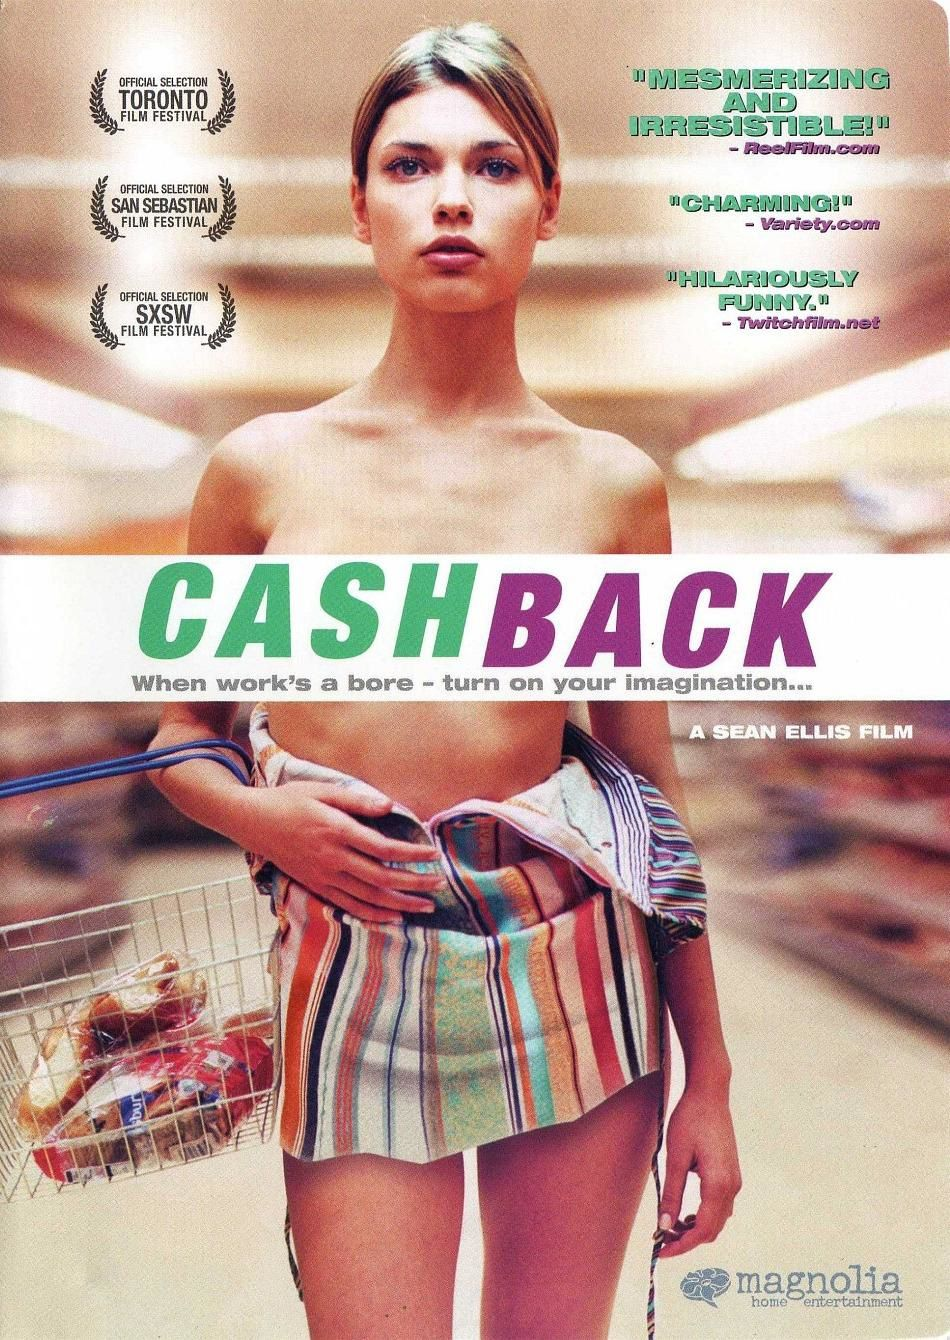 Cashback (2006) de Sean Ellis (UK)